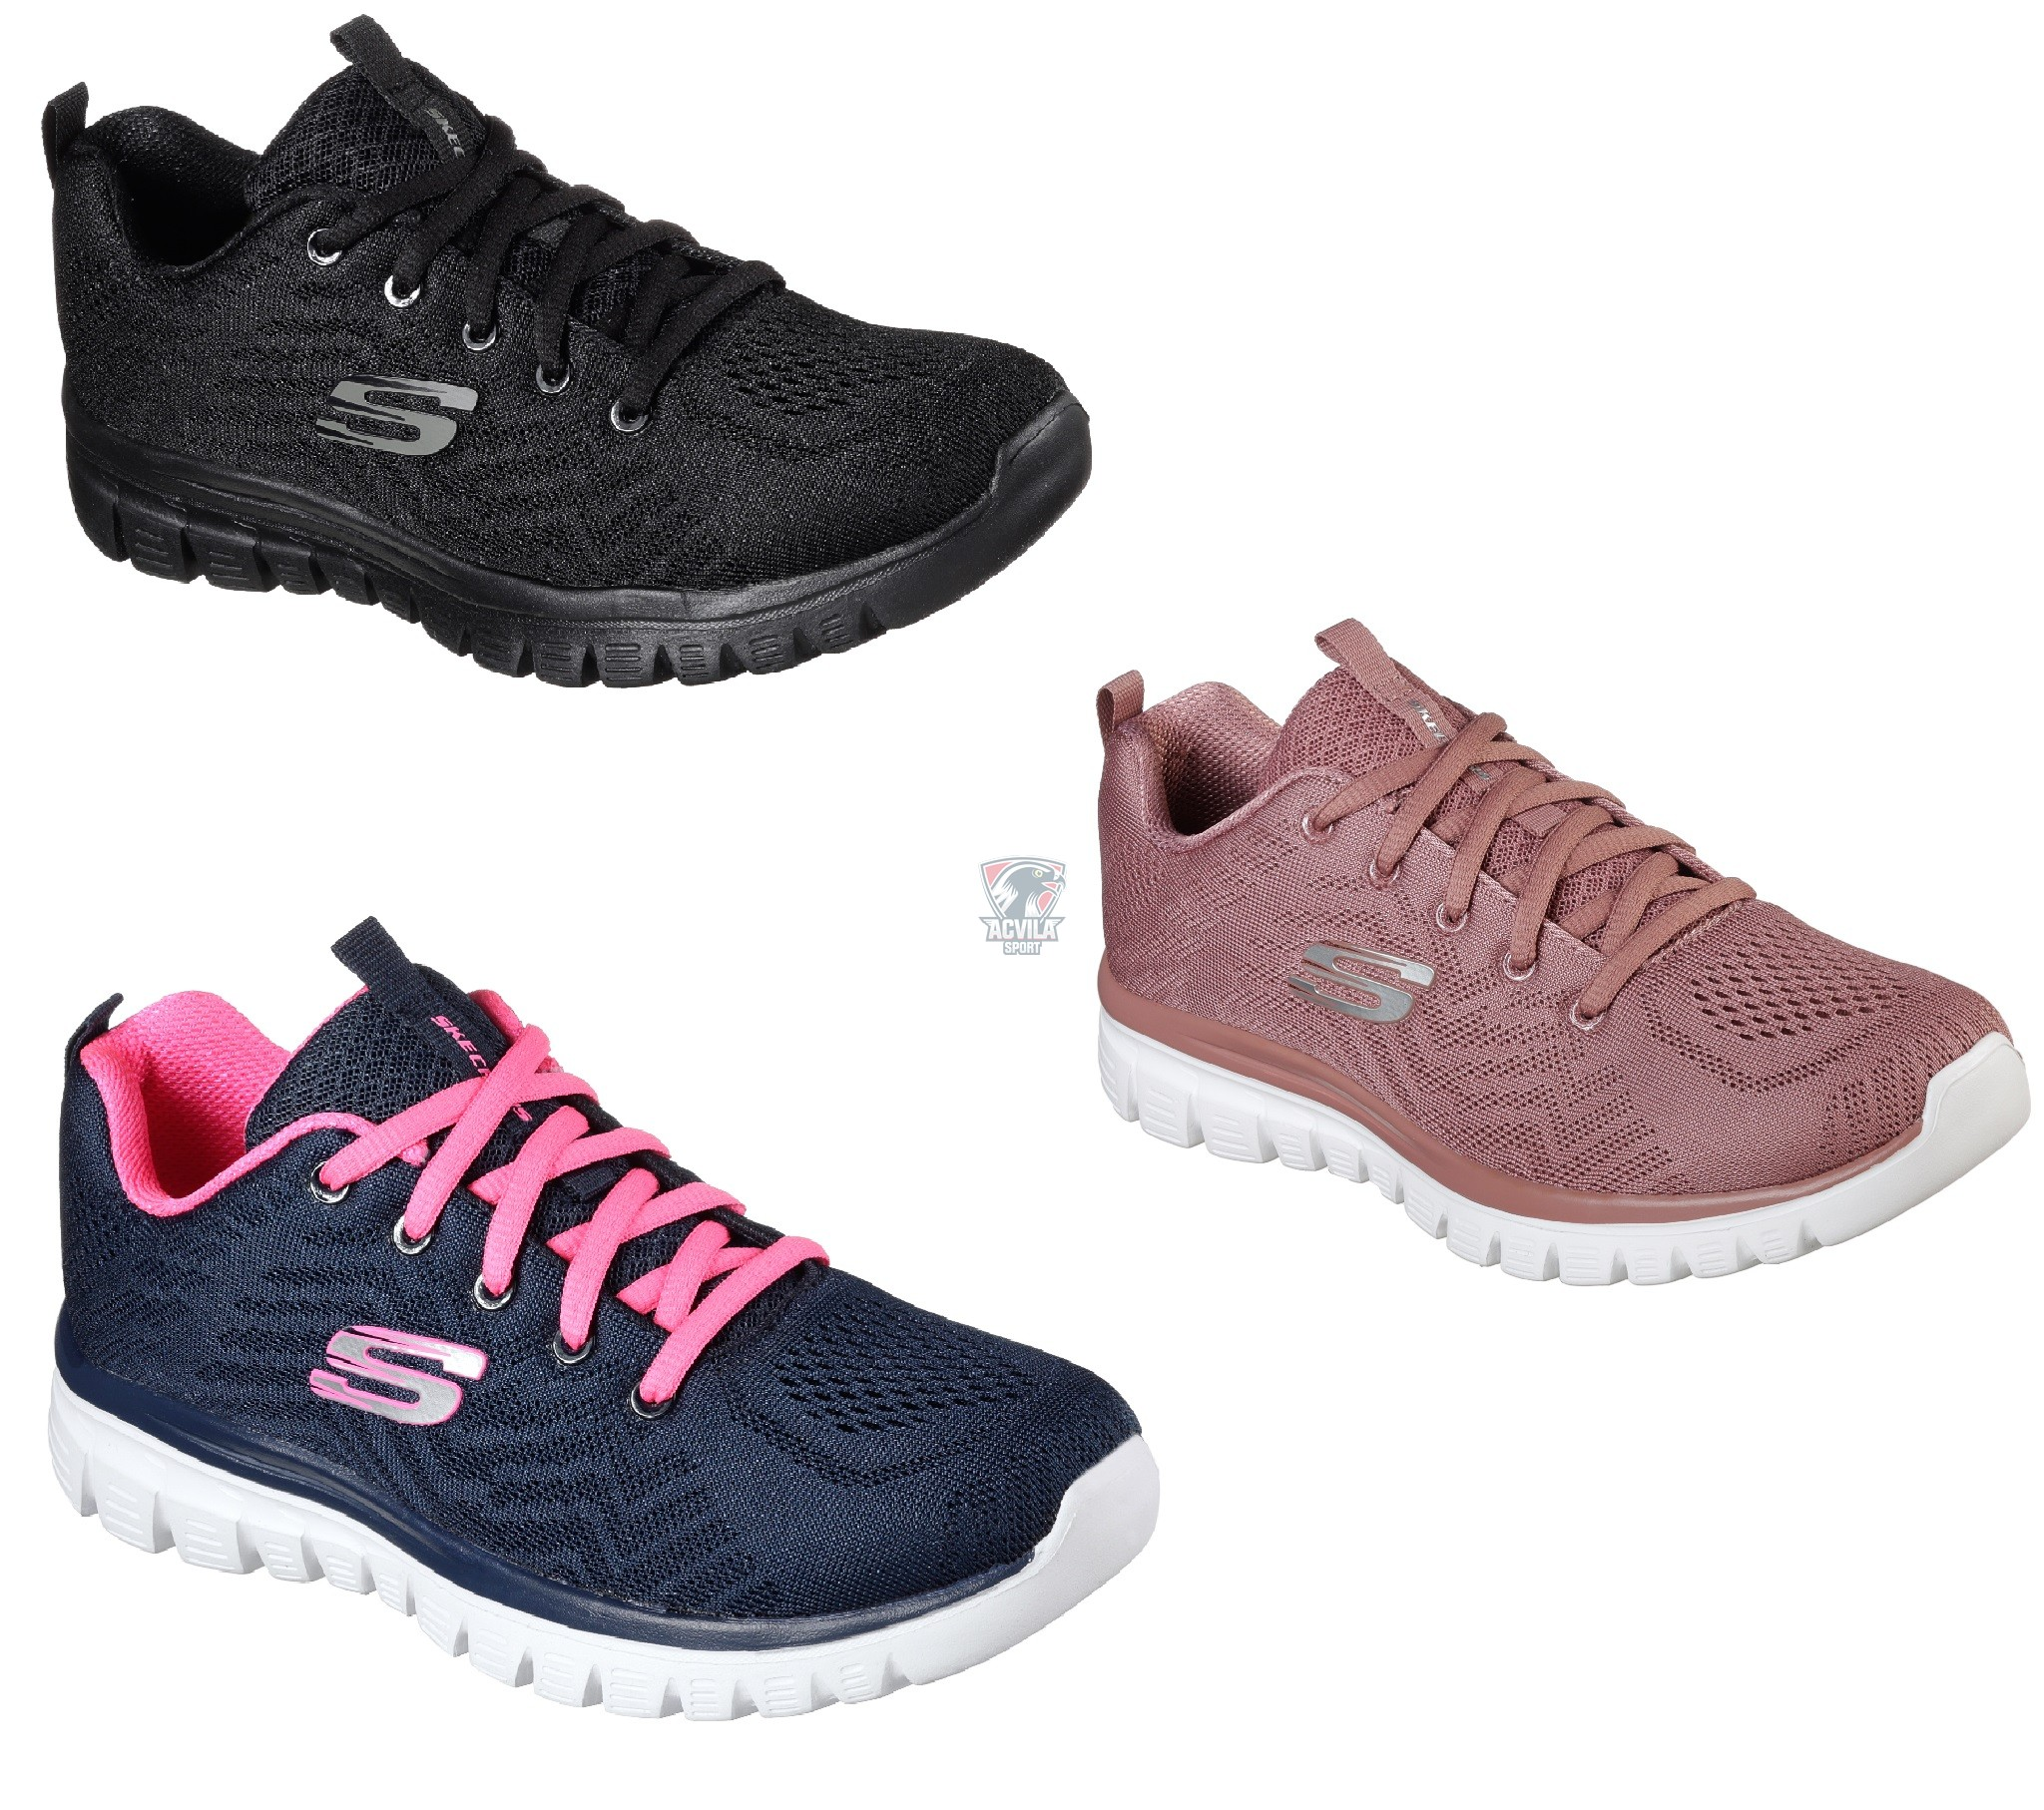 Photo acvilasport - SKECHERS GRACEFUL-GET CONNECTED